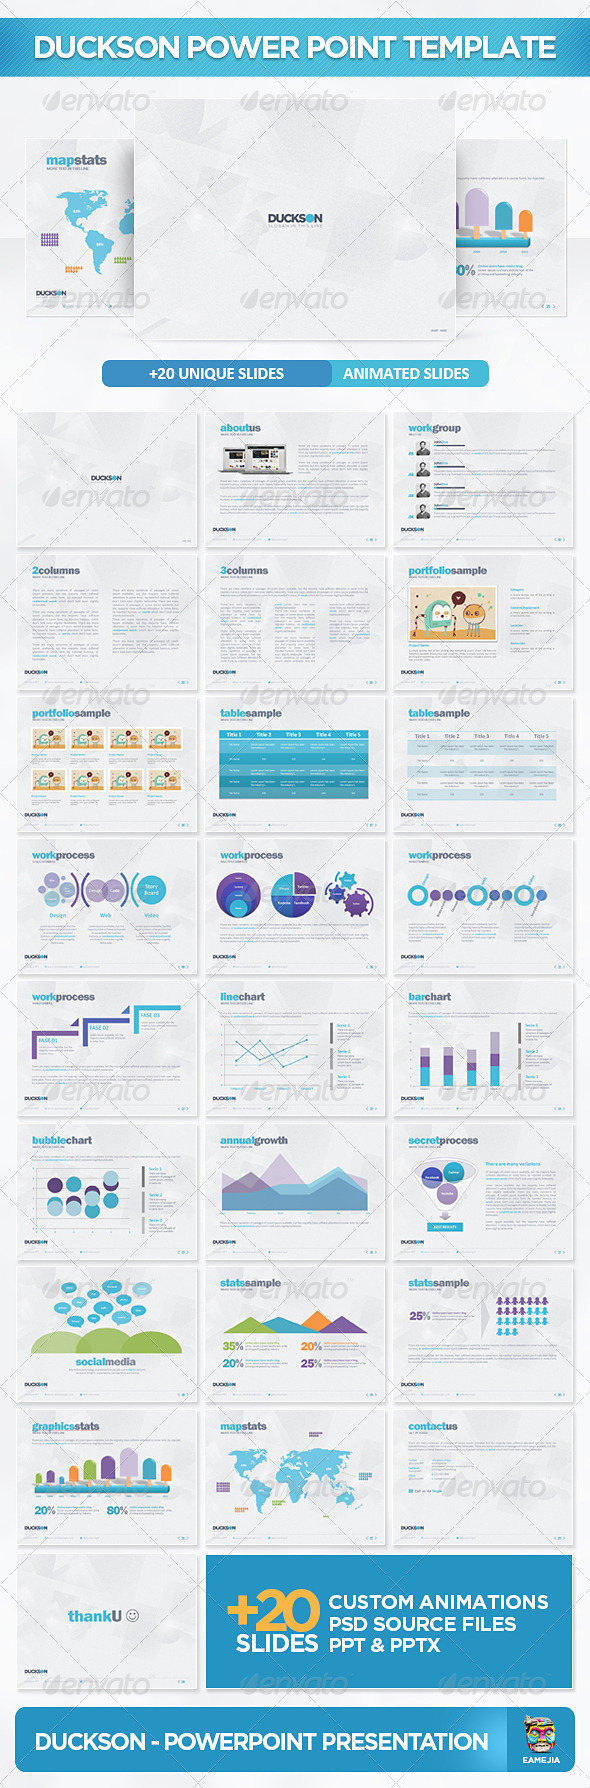 Duckson PowerPoint Presentation Template - Powerpoint Templates Presentation Templates